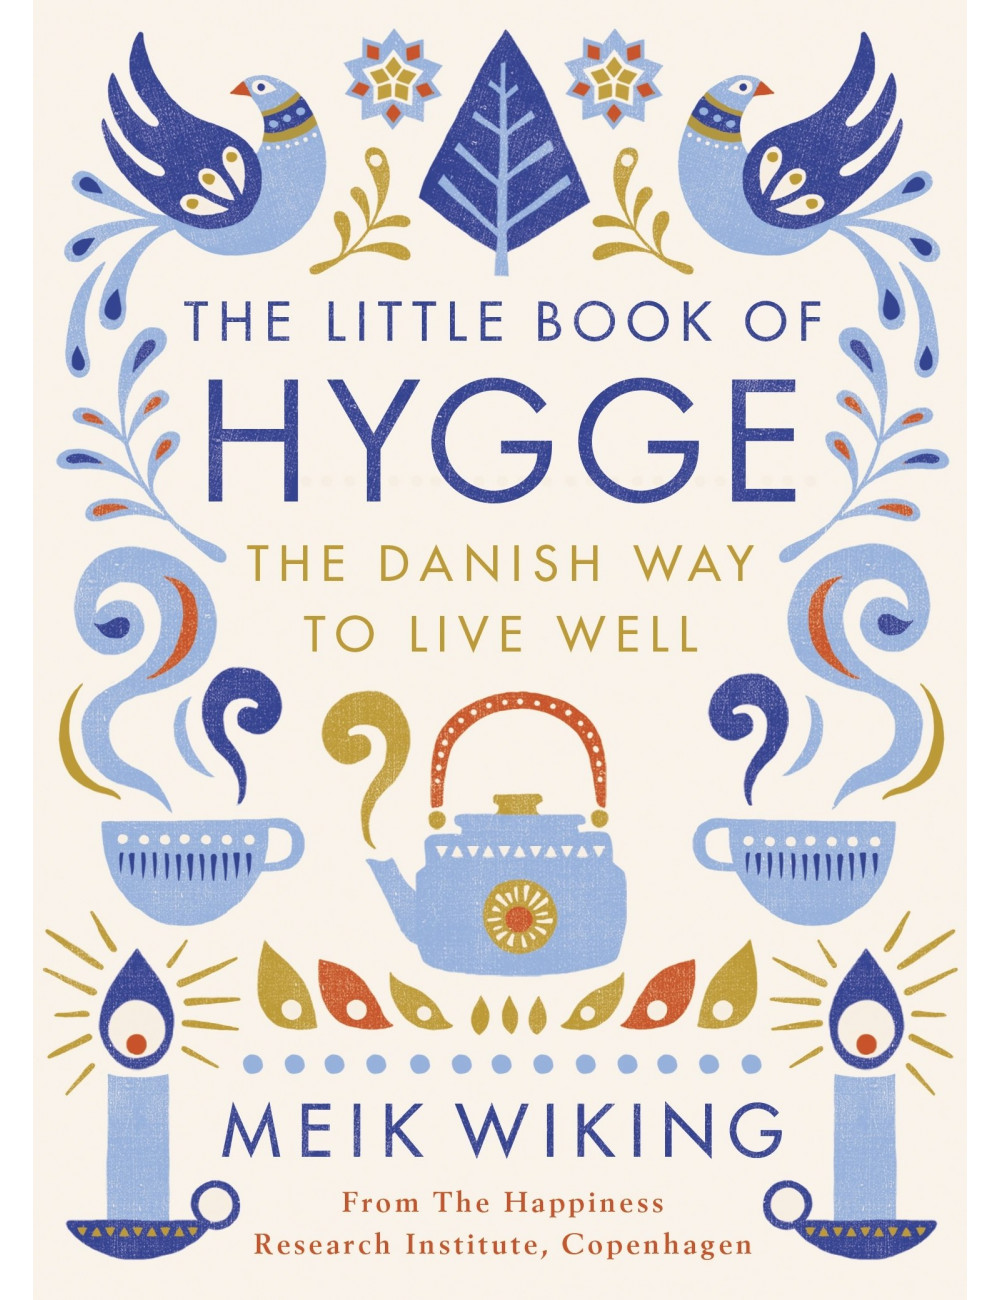 Boek The Little Book Of Hygge